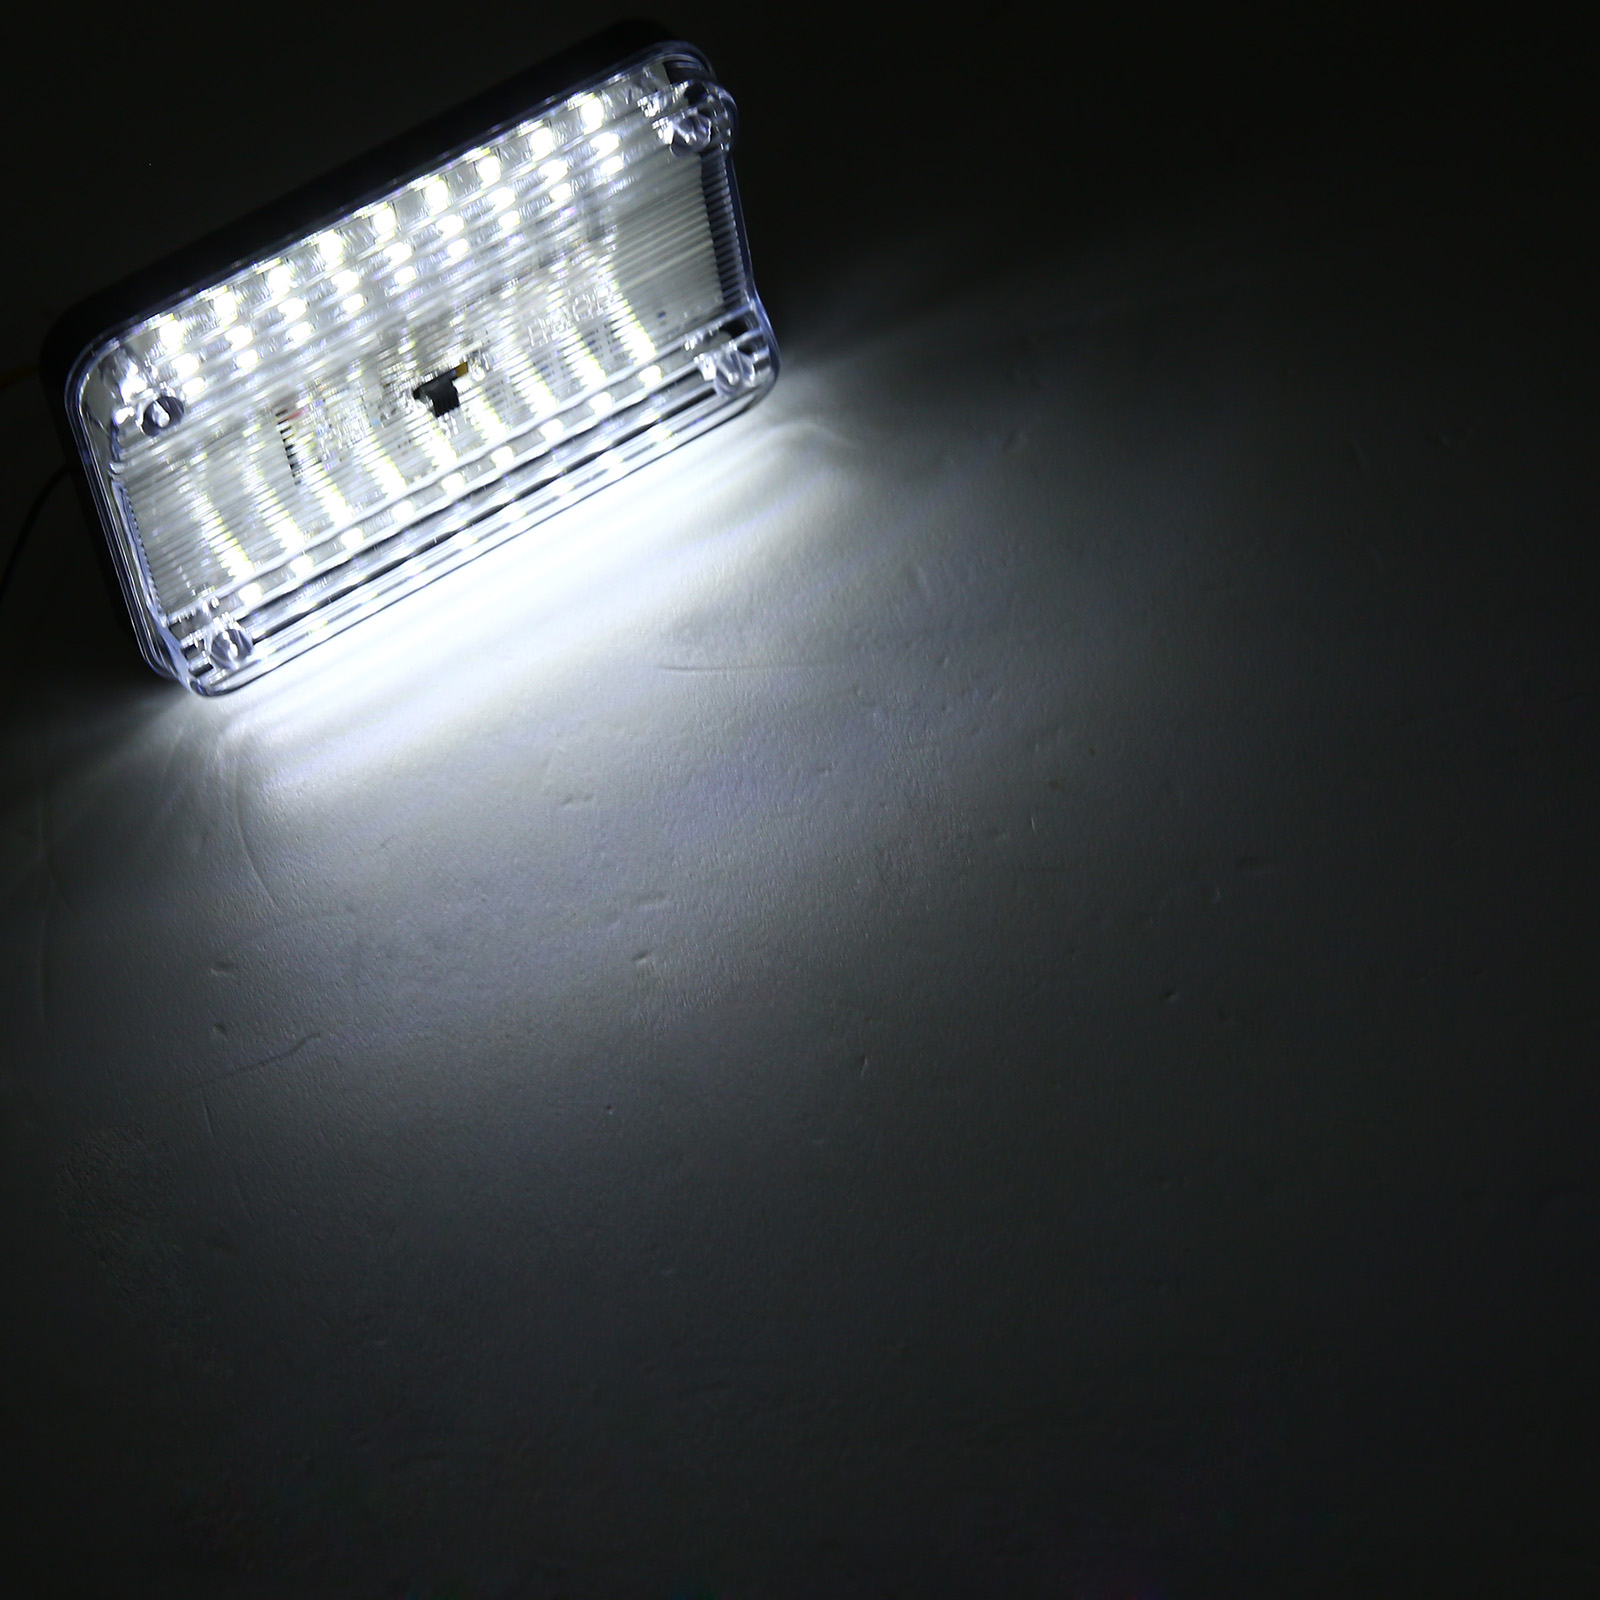 Universal White 12V 36 LED Auto Car Vehicle Interior Dome Roof Ceiling Reading Trunk Indoor Light Lamp High Light